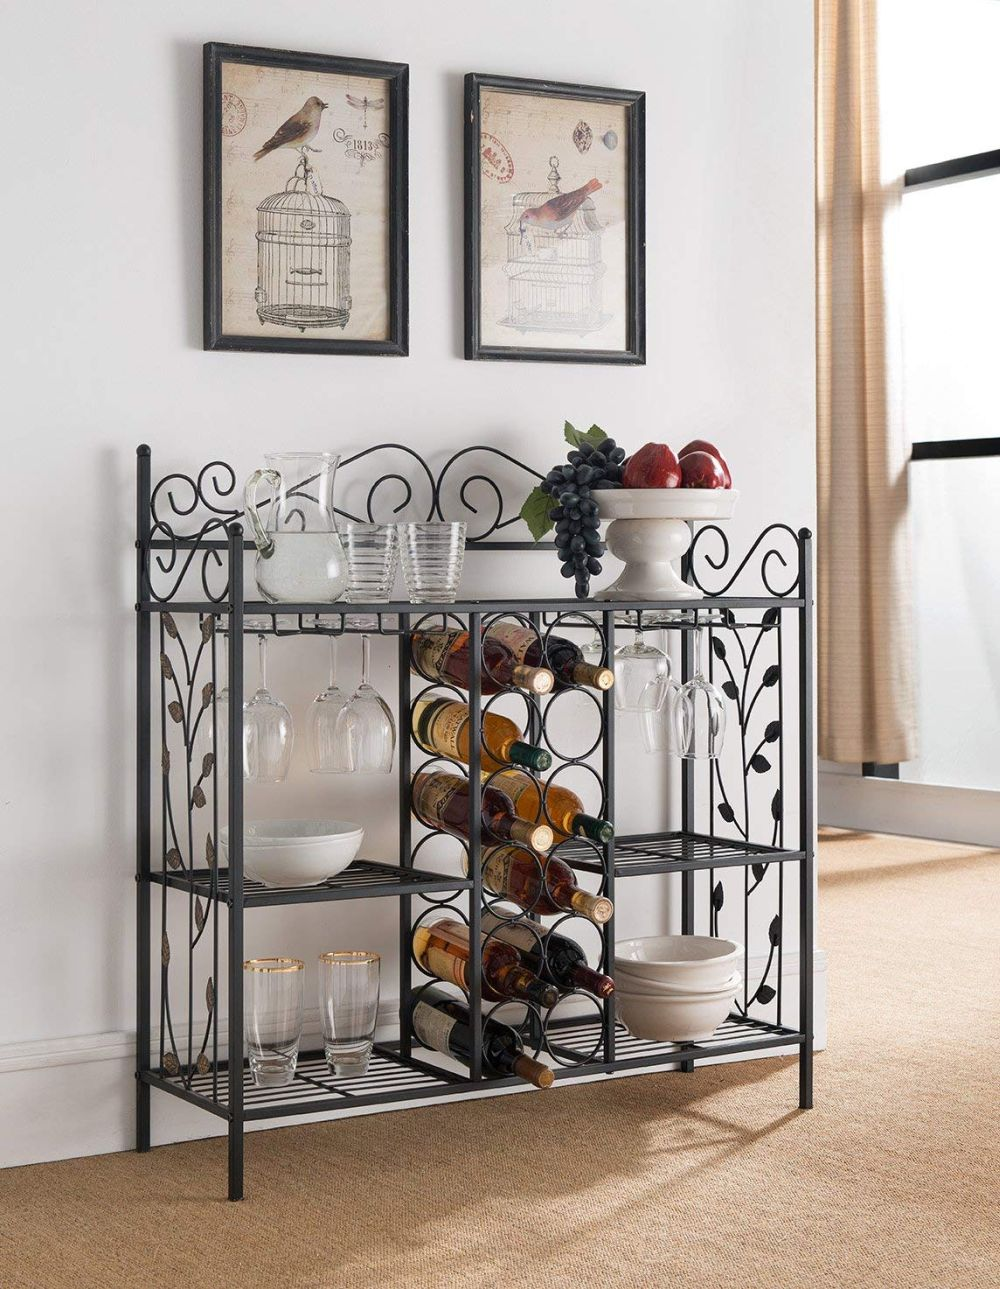 1570466149 38 the best wine rack tables for small and quirky spaces - The Best Wine Rack Tables for Small And Quirky Spaces